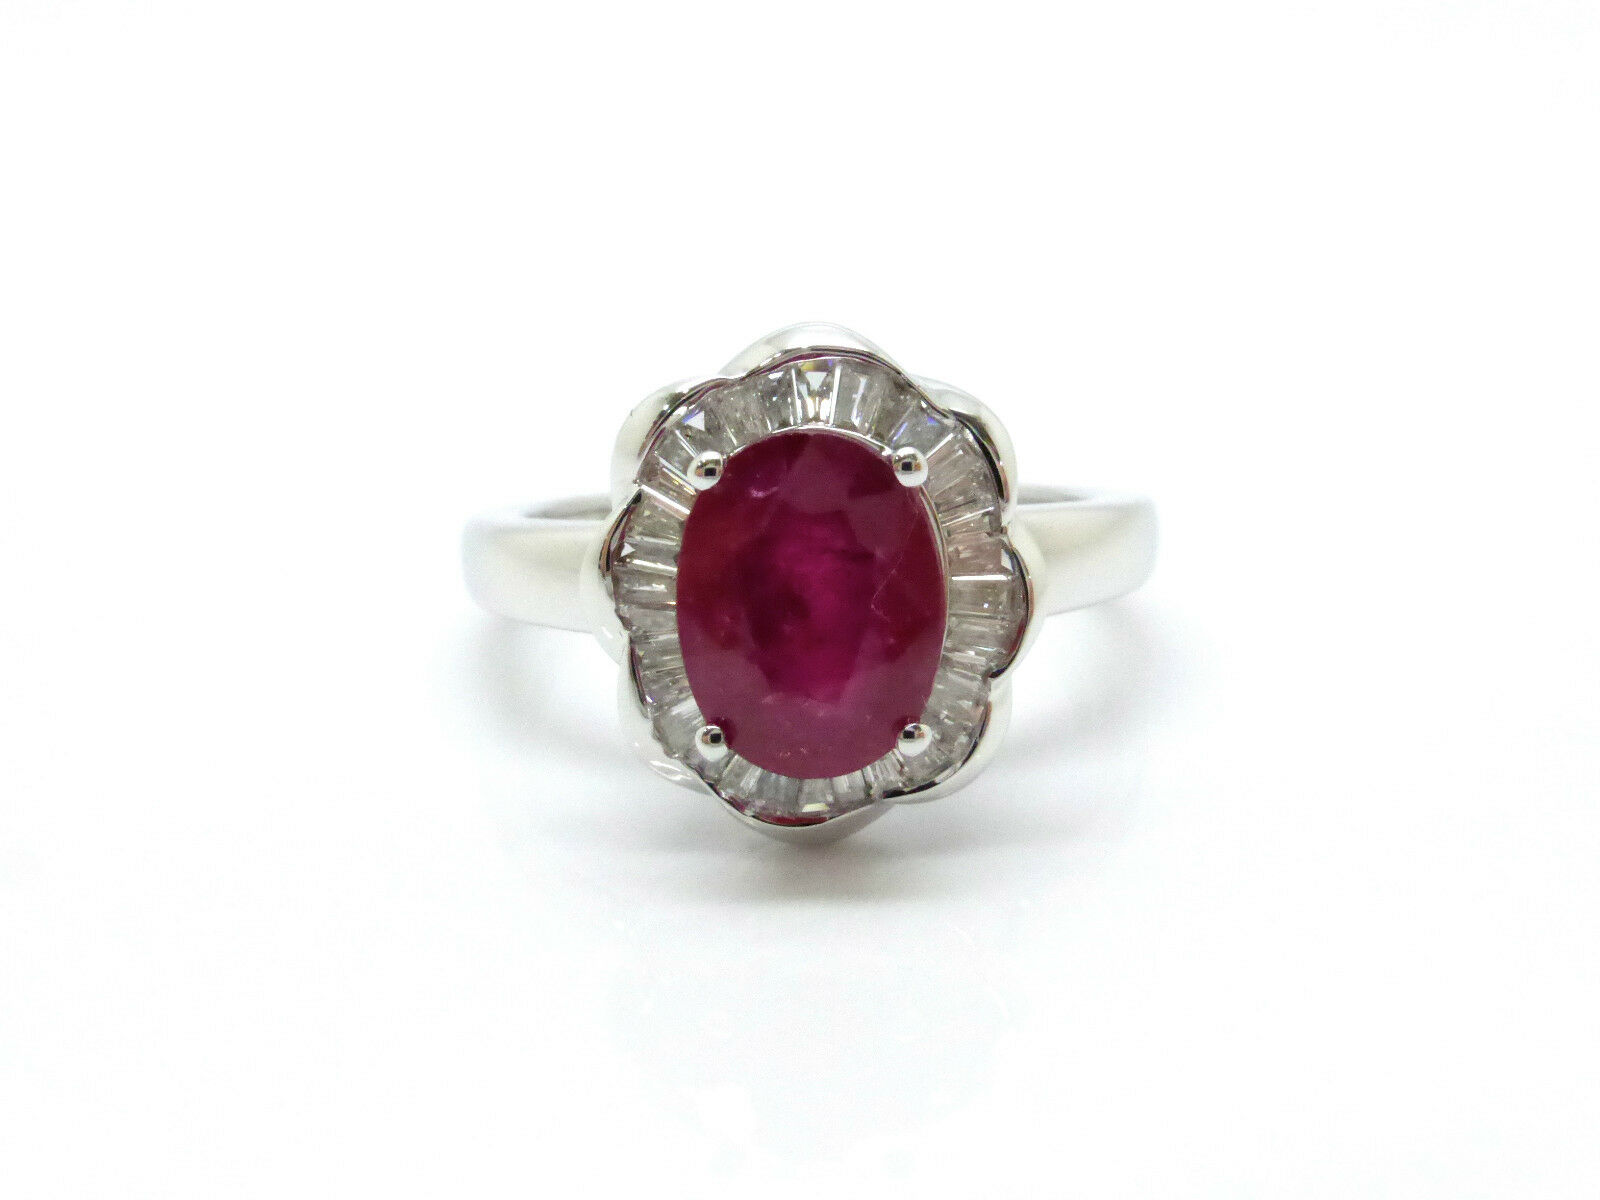 RING WHITE gold 18K 750 000 RUBY 1.19 CARAT & DIAMONDS 3.89 GRS T55 D25530